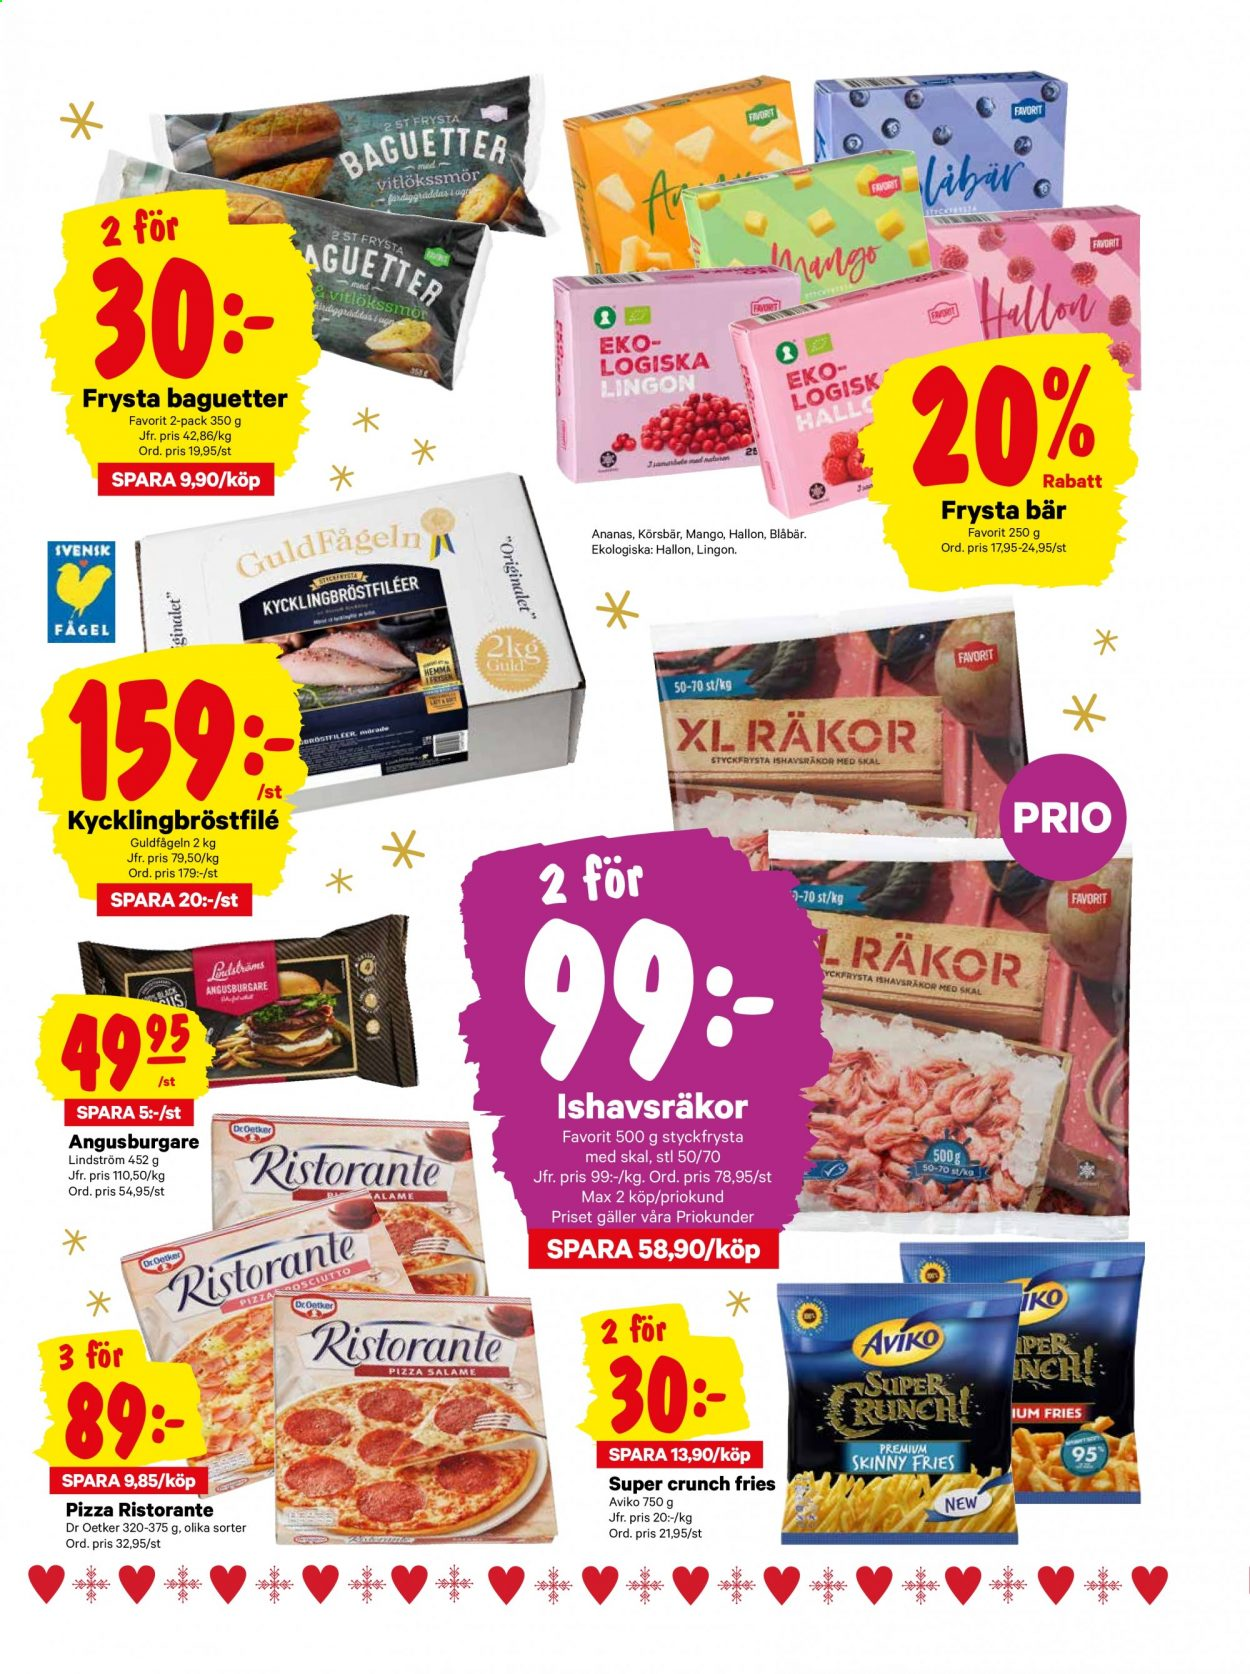 City Gross reklamblad - 29/12 2020 - 3/1 2021. Sida 13.